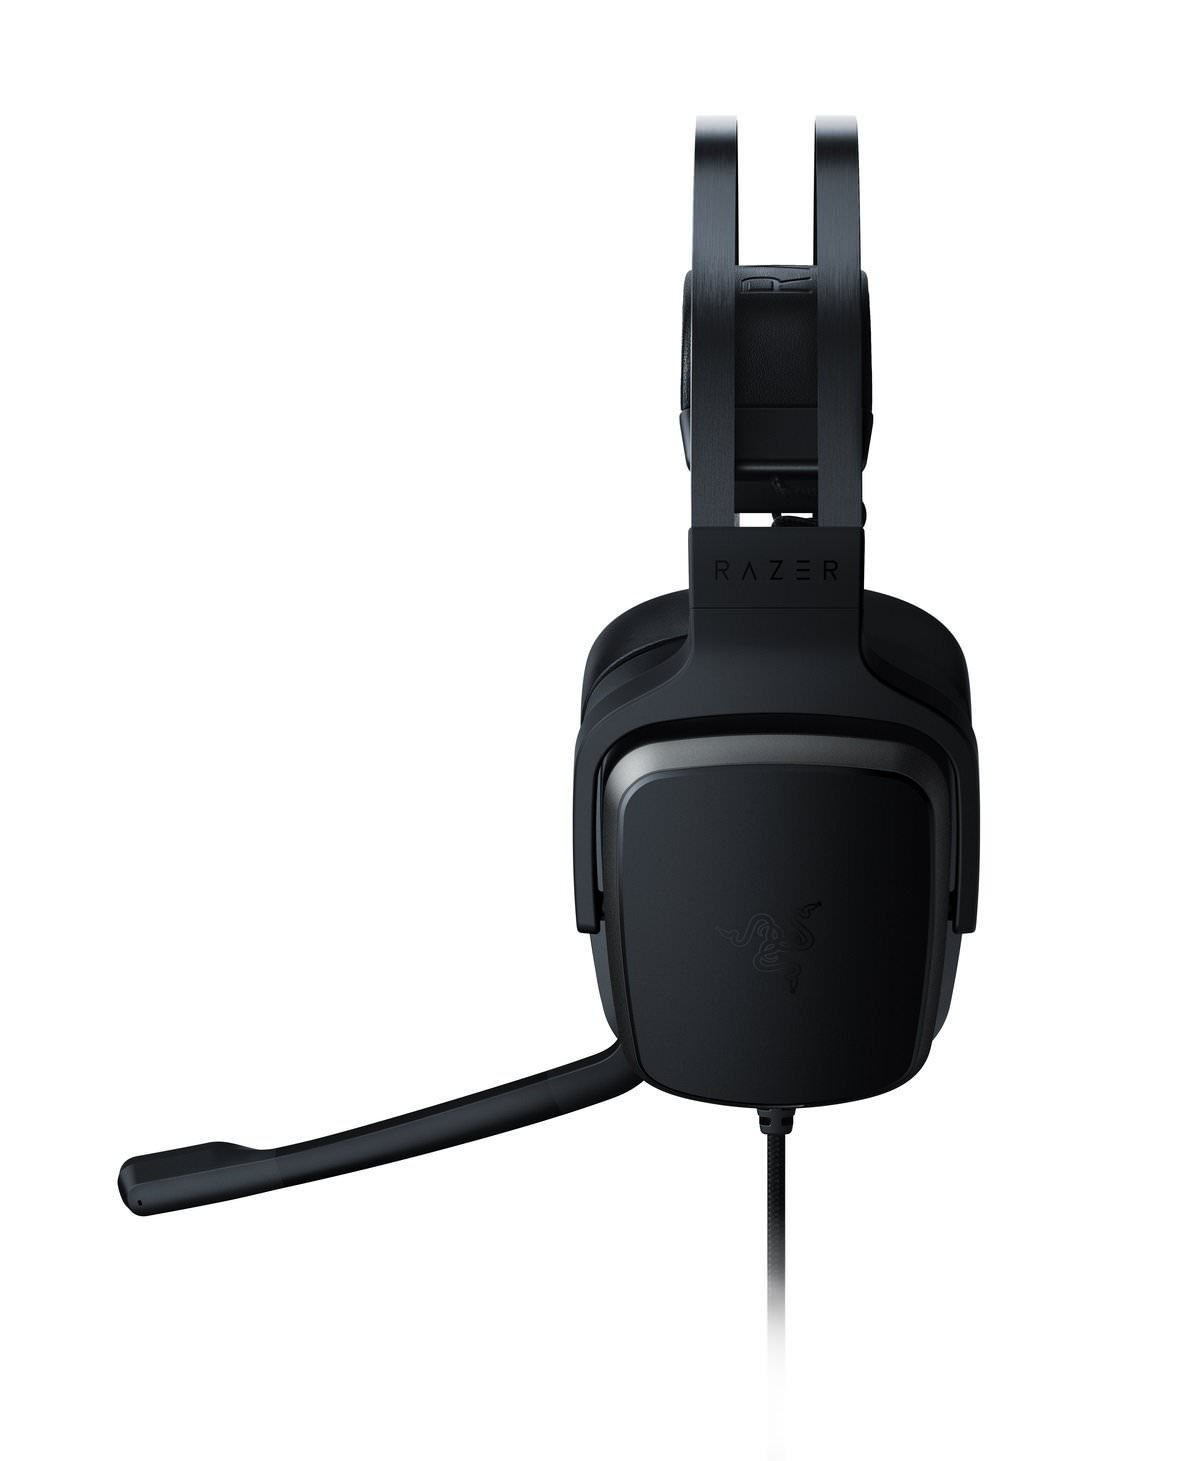 Razer Tiamat 7.1 V2 Analog Digital Surround Sound Gaming Headset by Razer